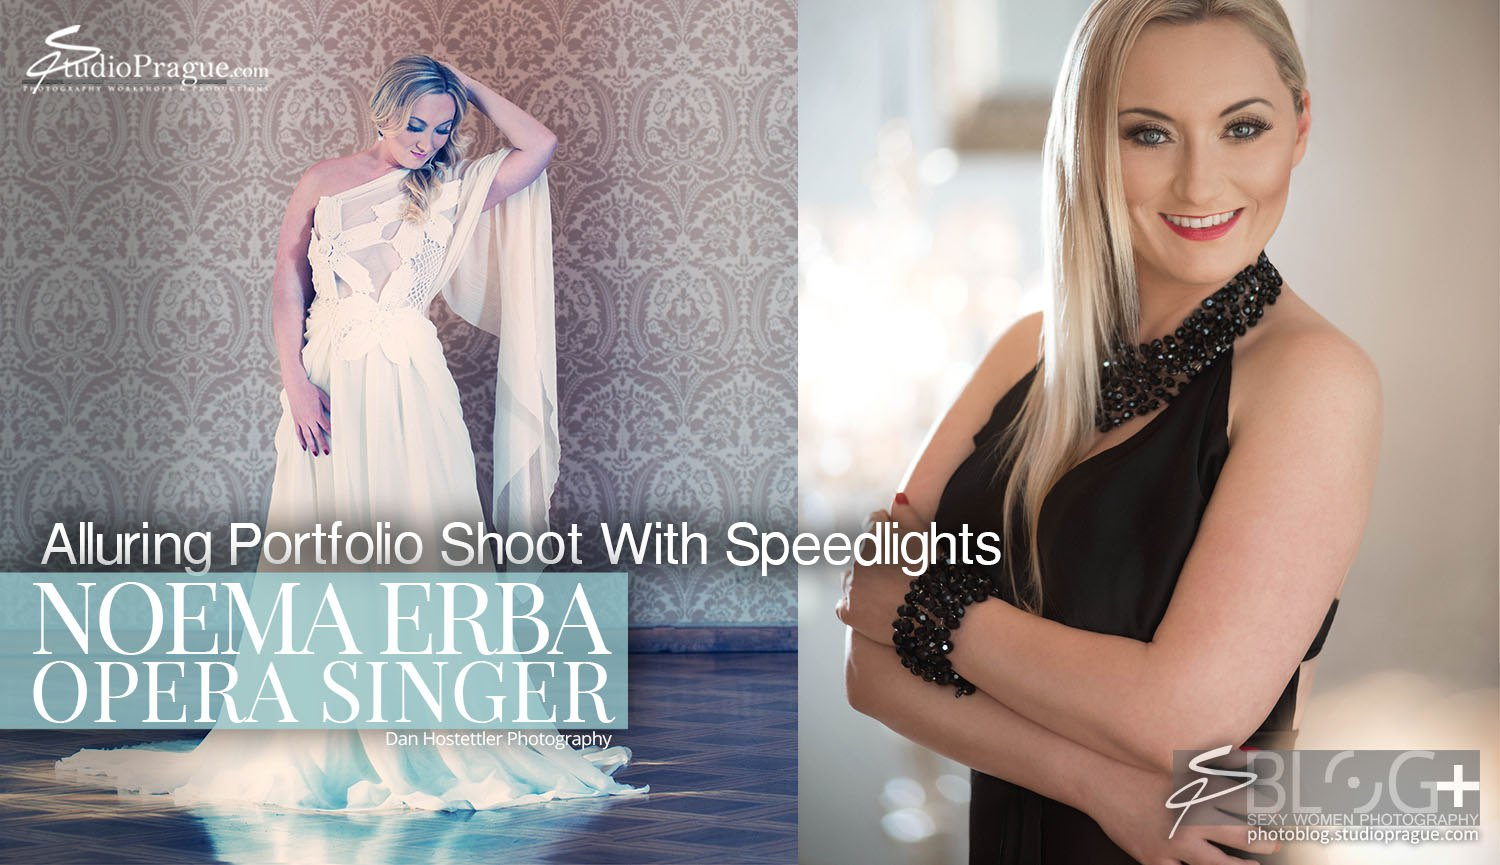 Working With Speedlights: Alluring Portfolio Shoot for Noema Erba, Opera Singer